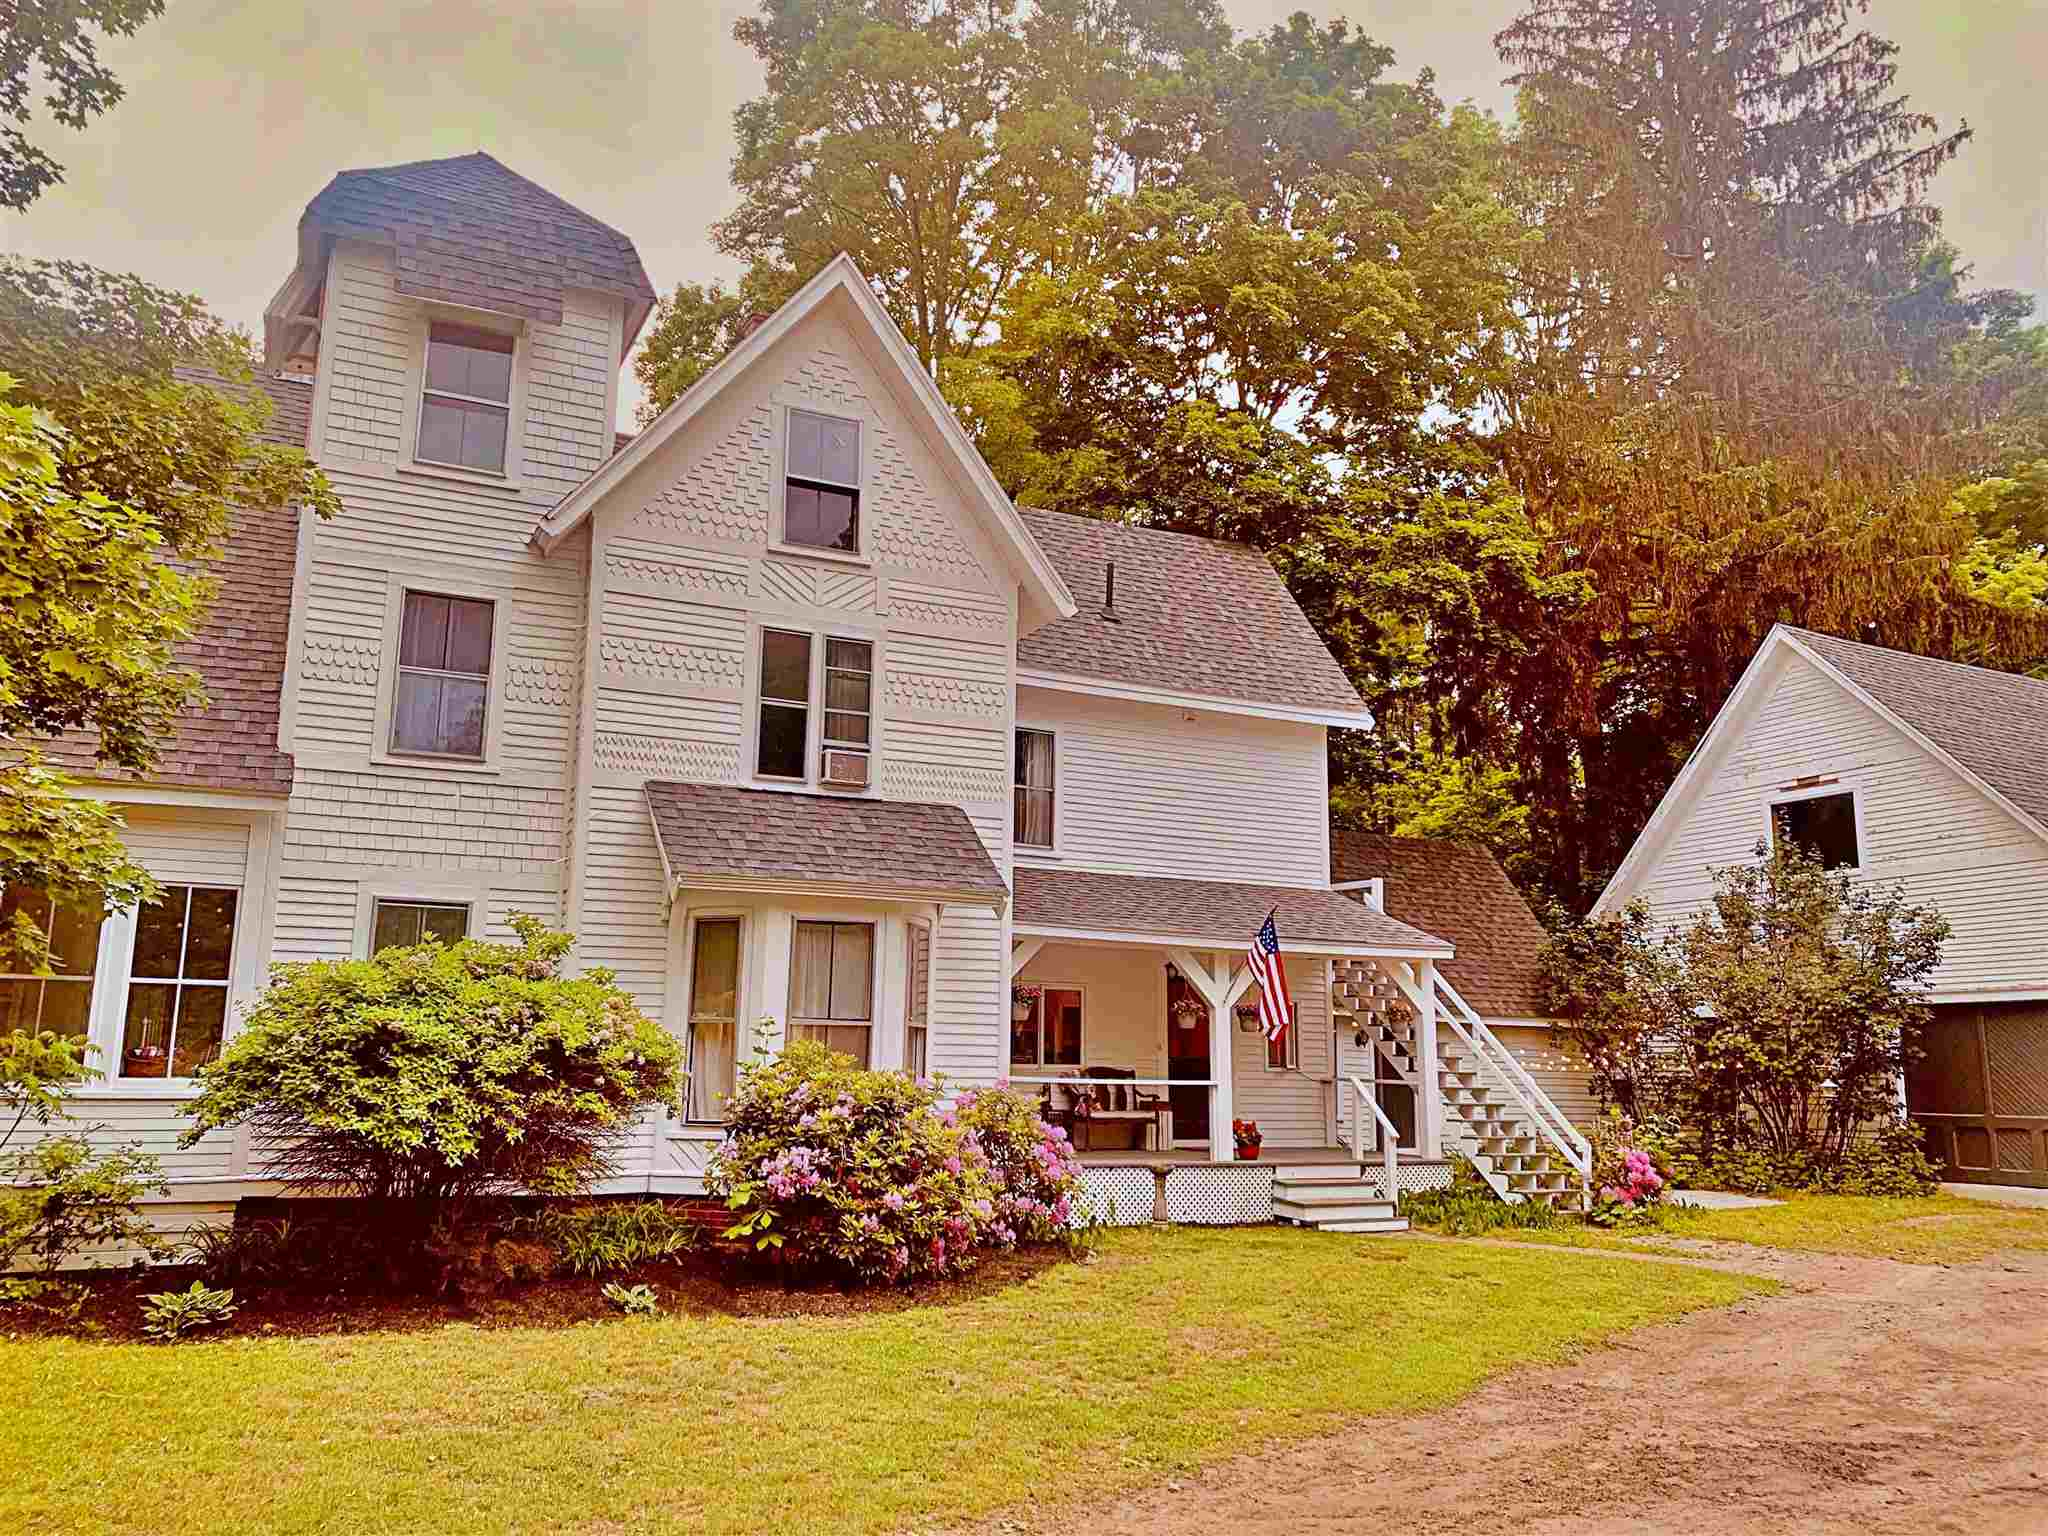 Photo of 23 Pleasant Street Epping NH 03042